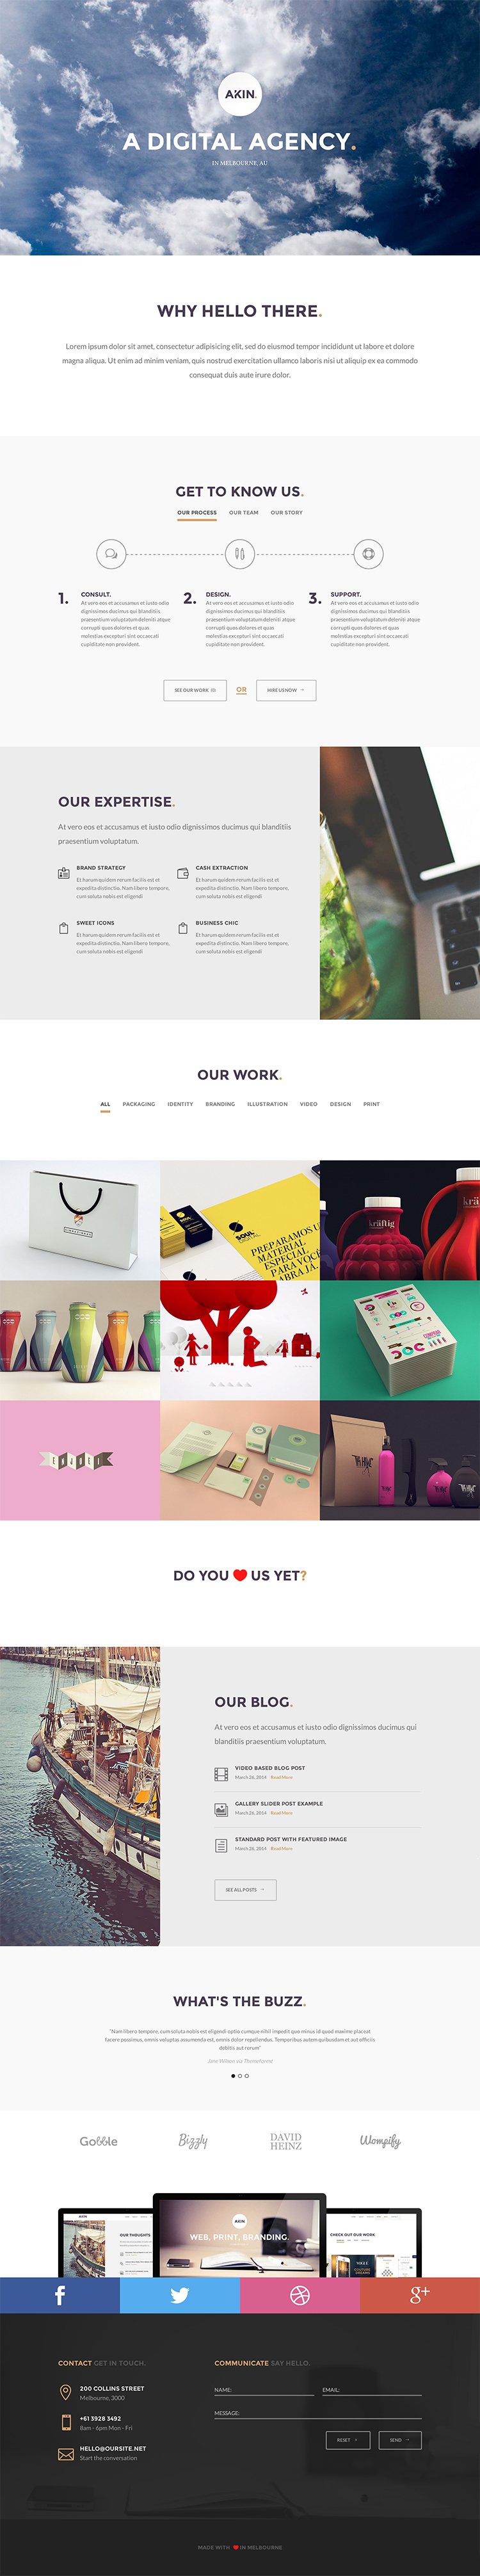 Akin is the perfect WordPress theme for those who desire sophisticated simplicity brought about by thoughtful design decisions. Featuring clean typography and subtle use of colours, Akin has a distinct personality that is both professional and playful.